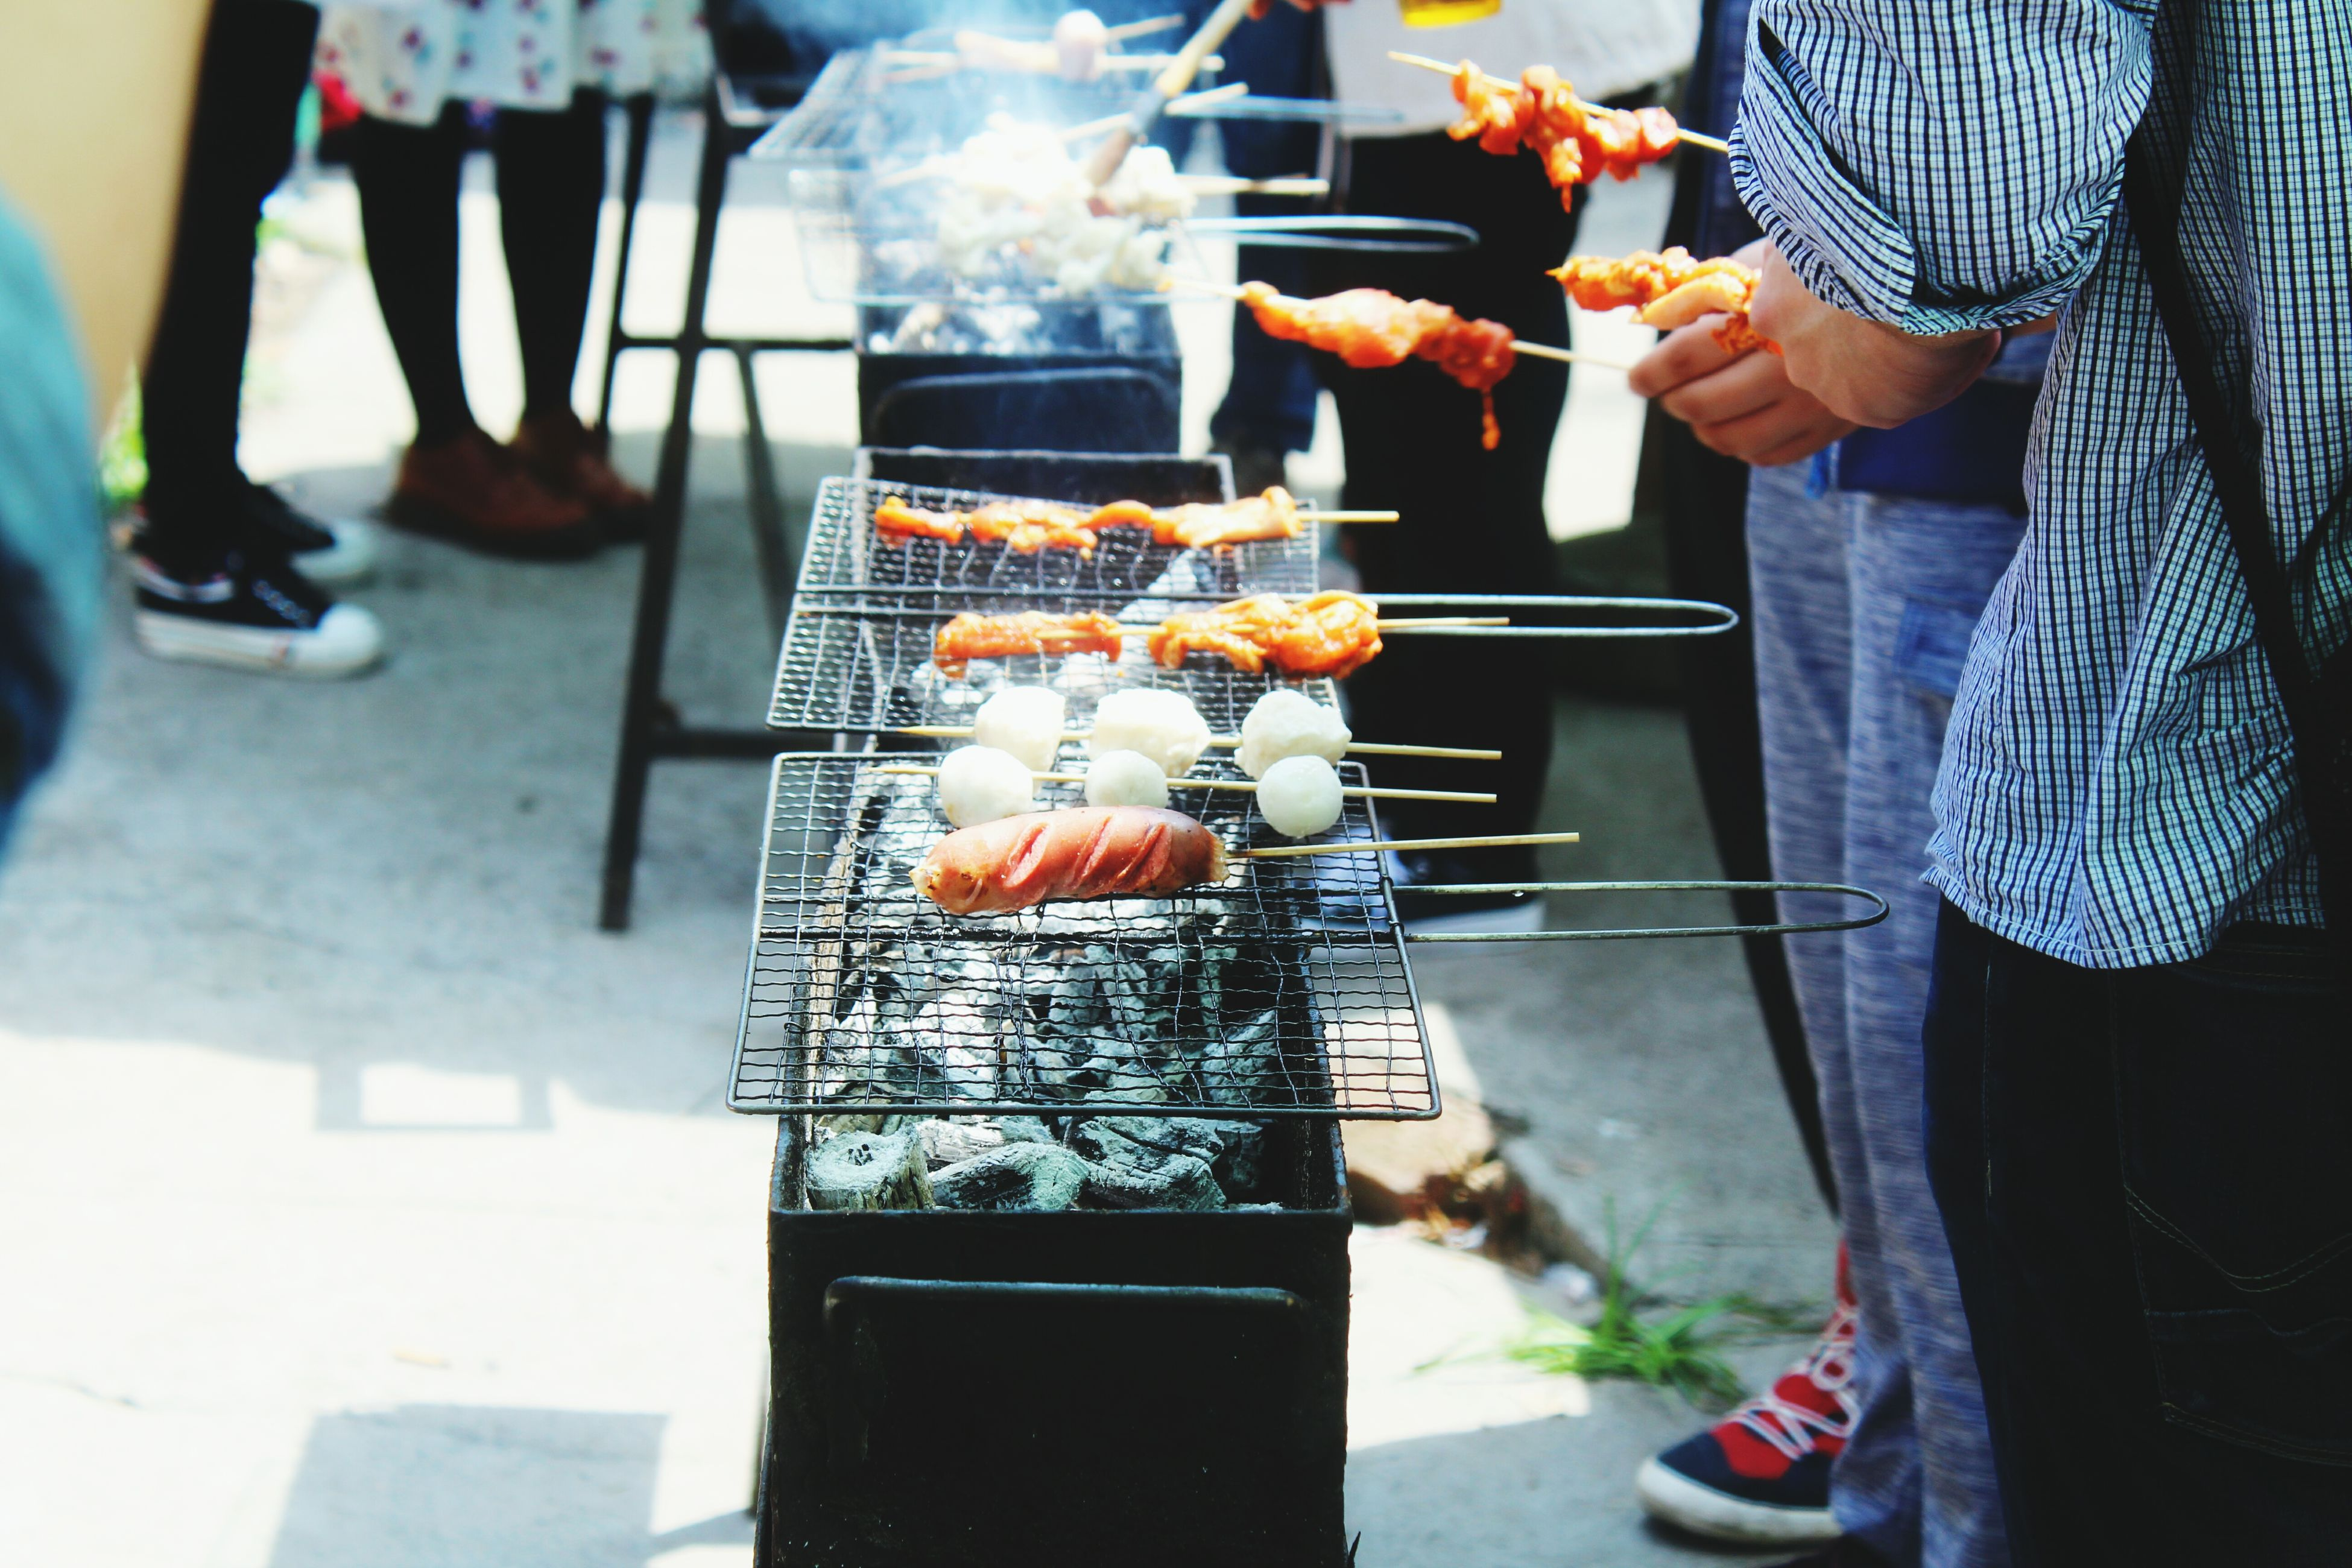 food and drink, food, men, freshness, lifestyles, holding, incidental people, indoors, person, preparation, leisure activity, barbecue grill, market stall, occupation, market, healthy eating